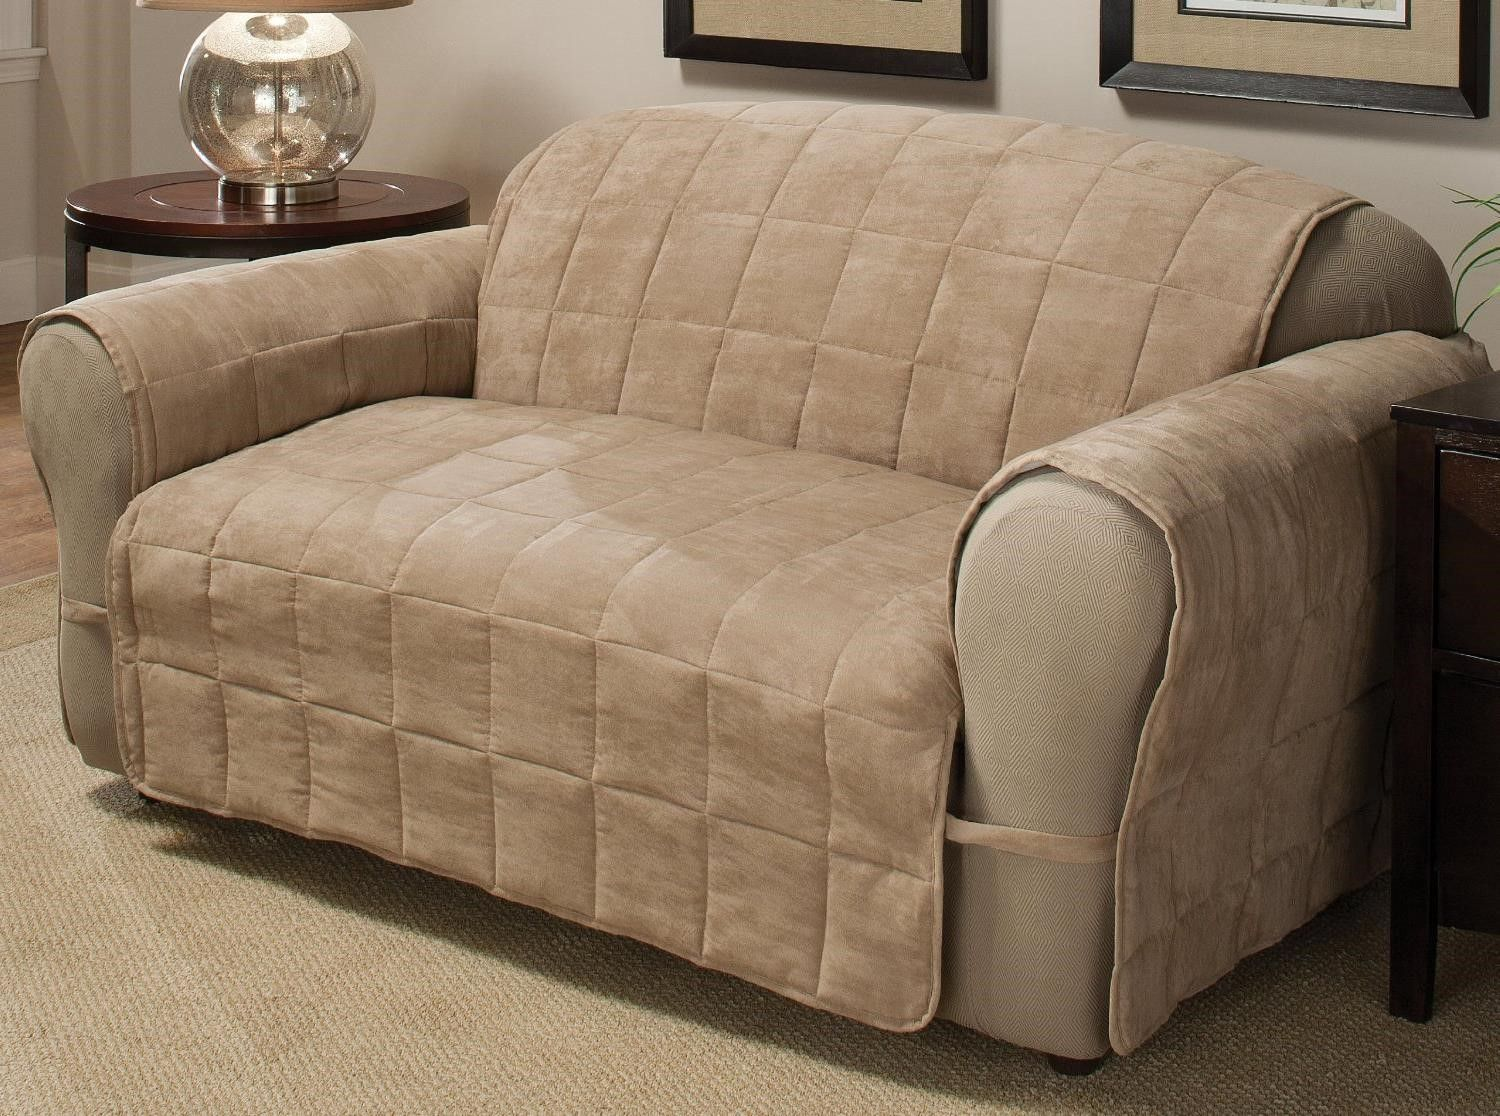 Sofa Covers Leather Couch 170 - Thesofa